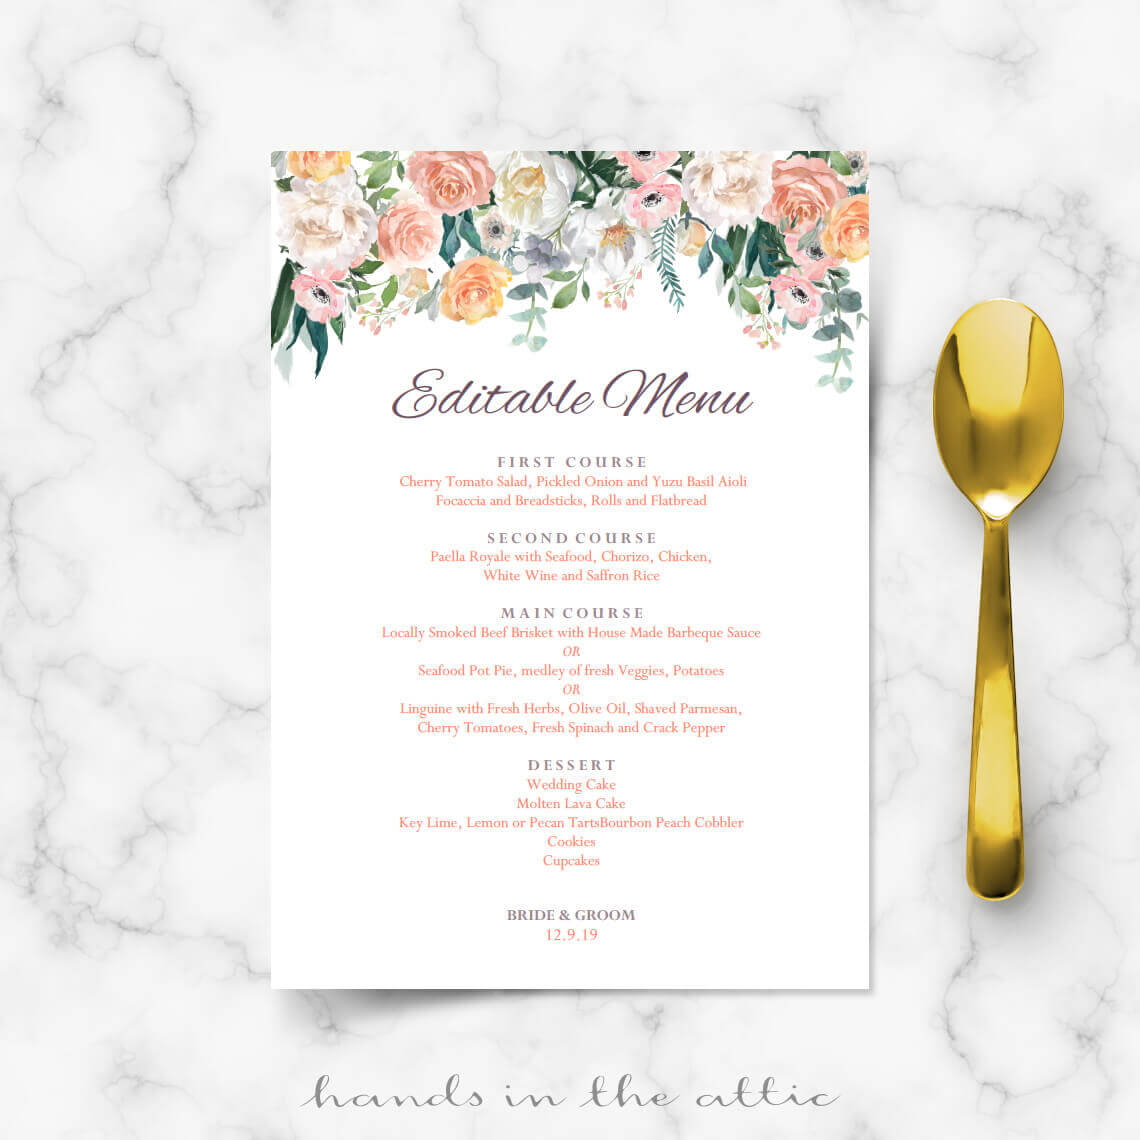 Secret Garden Vintage Flowers Menu Template Hands In The Attic